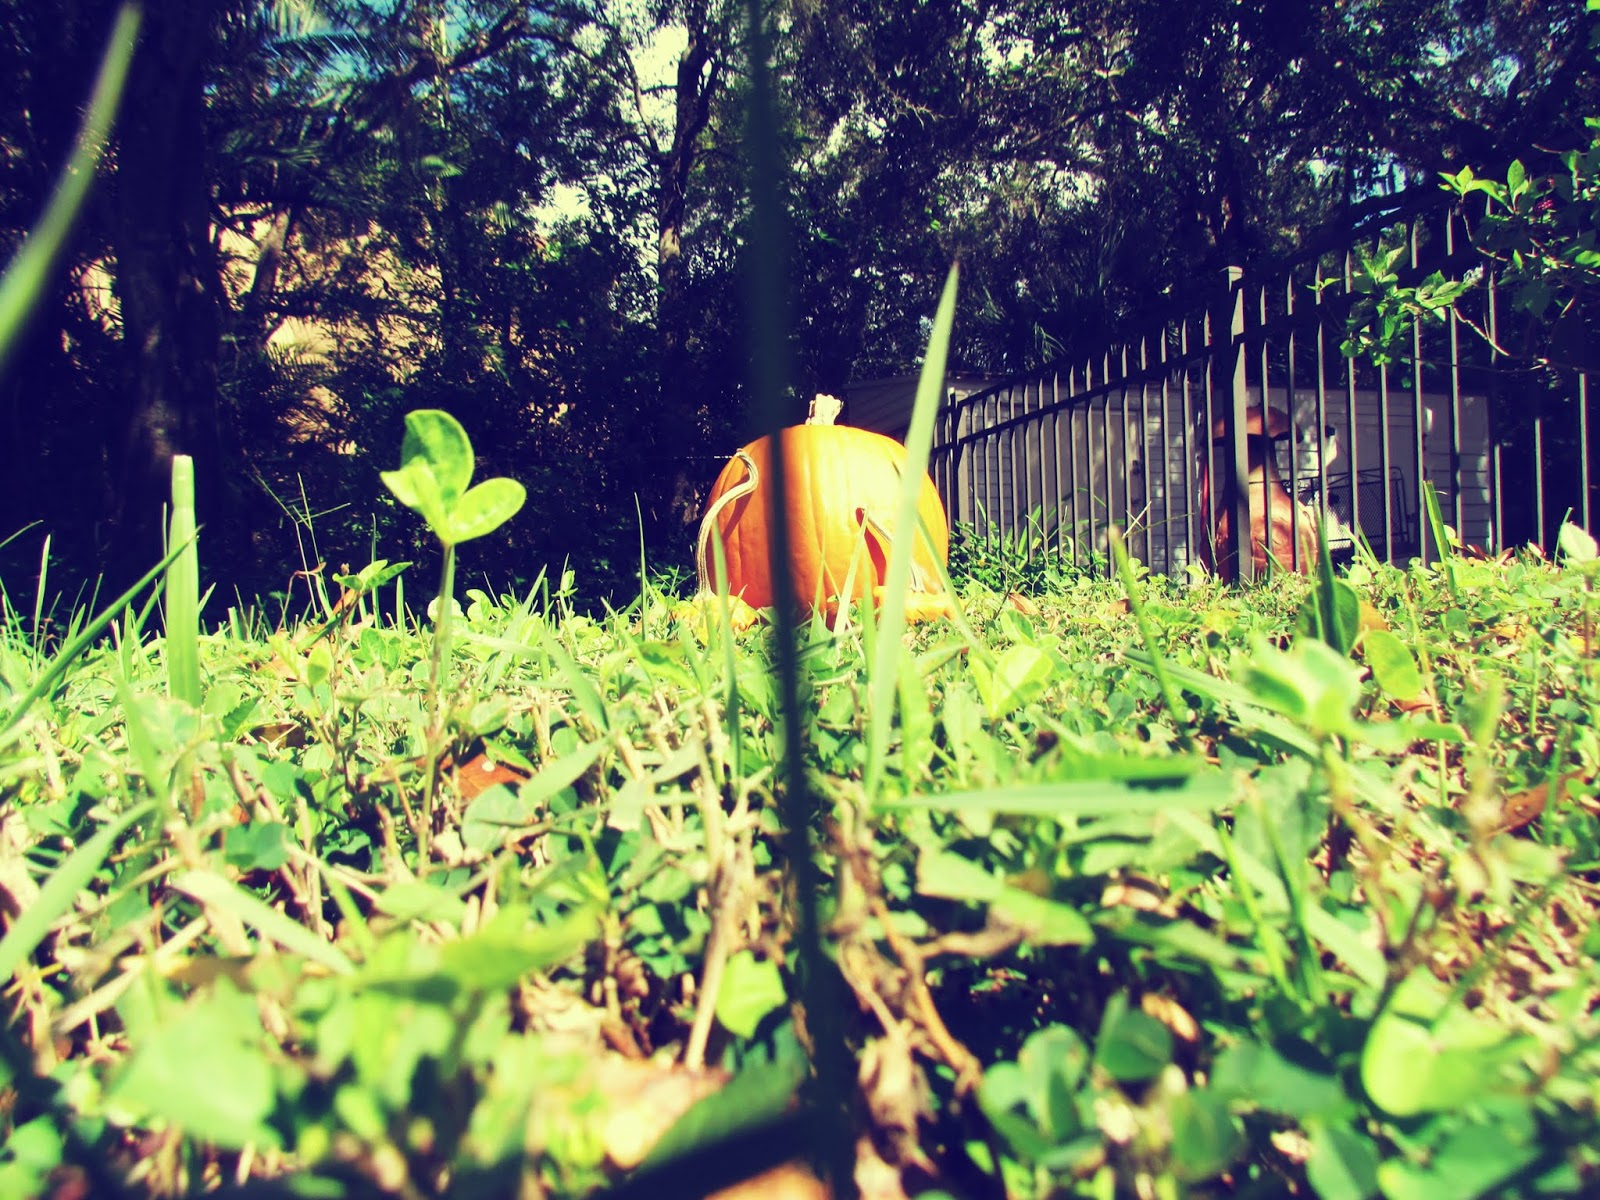 Pumpkin Patch in a Florida Backyard in tall blades of grass with mushroom picking season